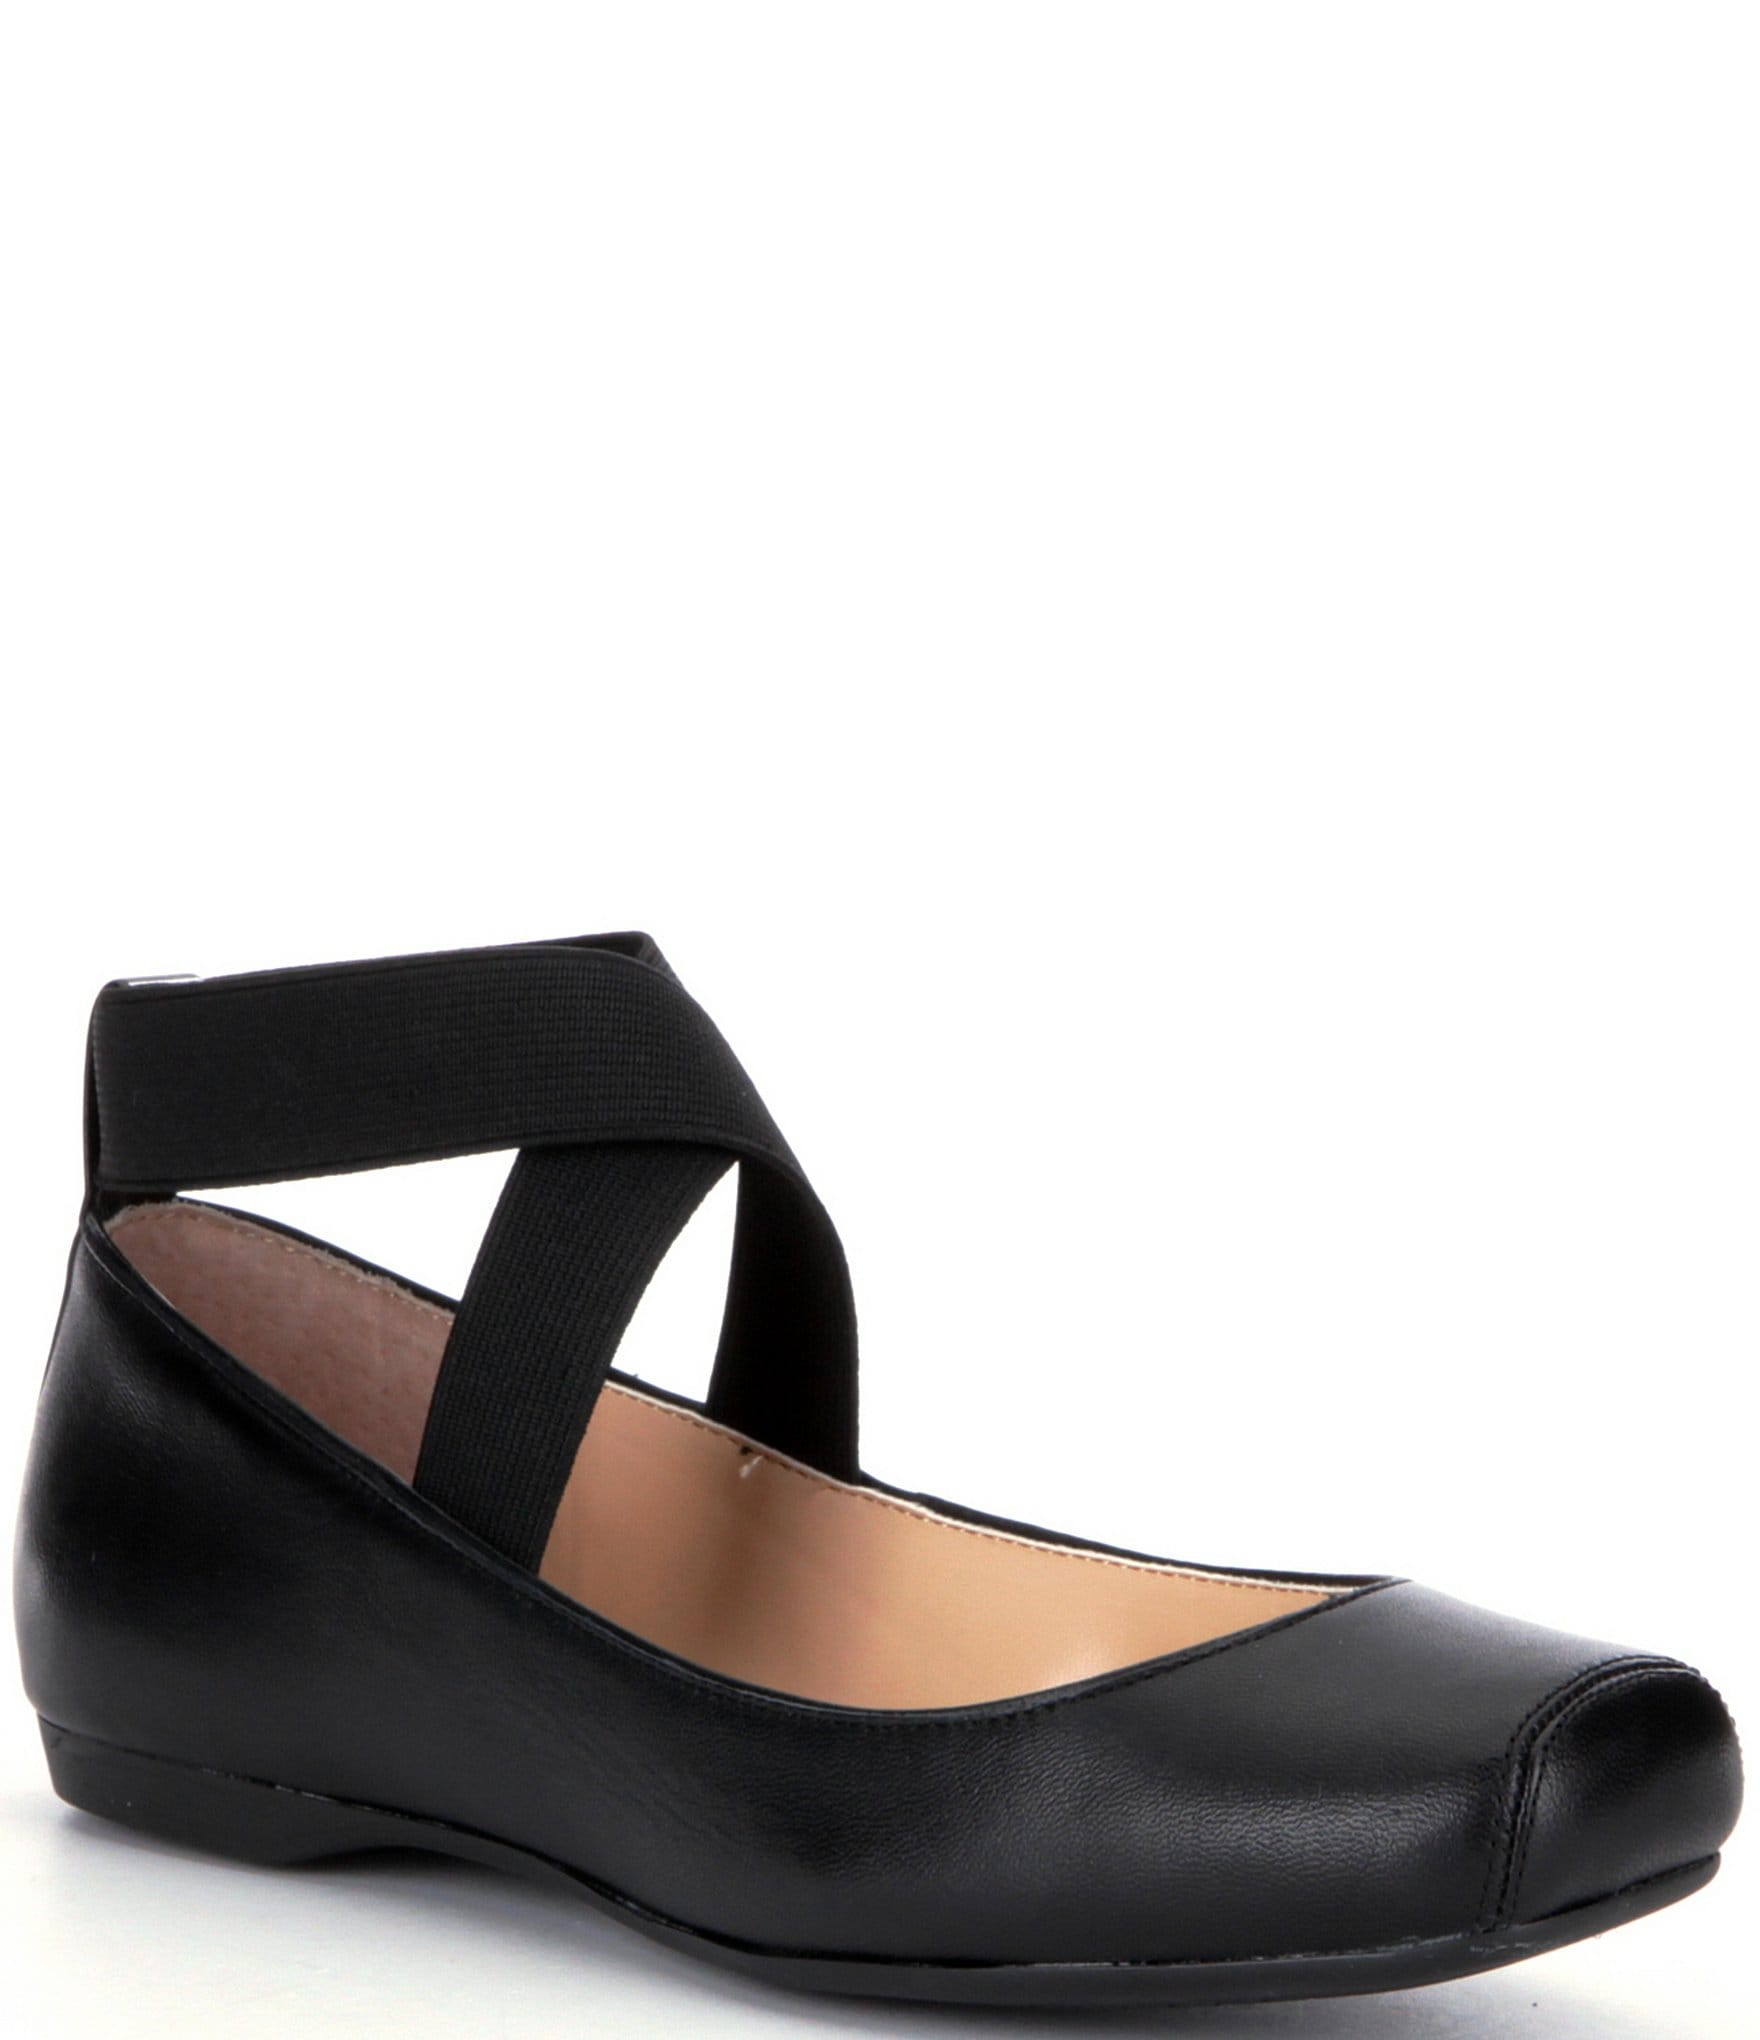 Wonderful Marie Comfort Women Flats Black 1699516 FL